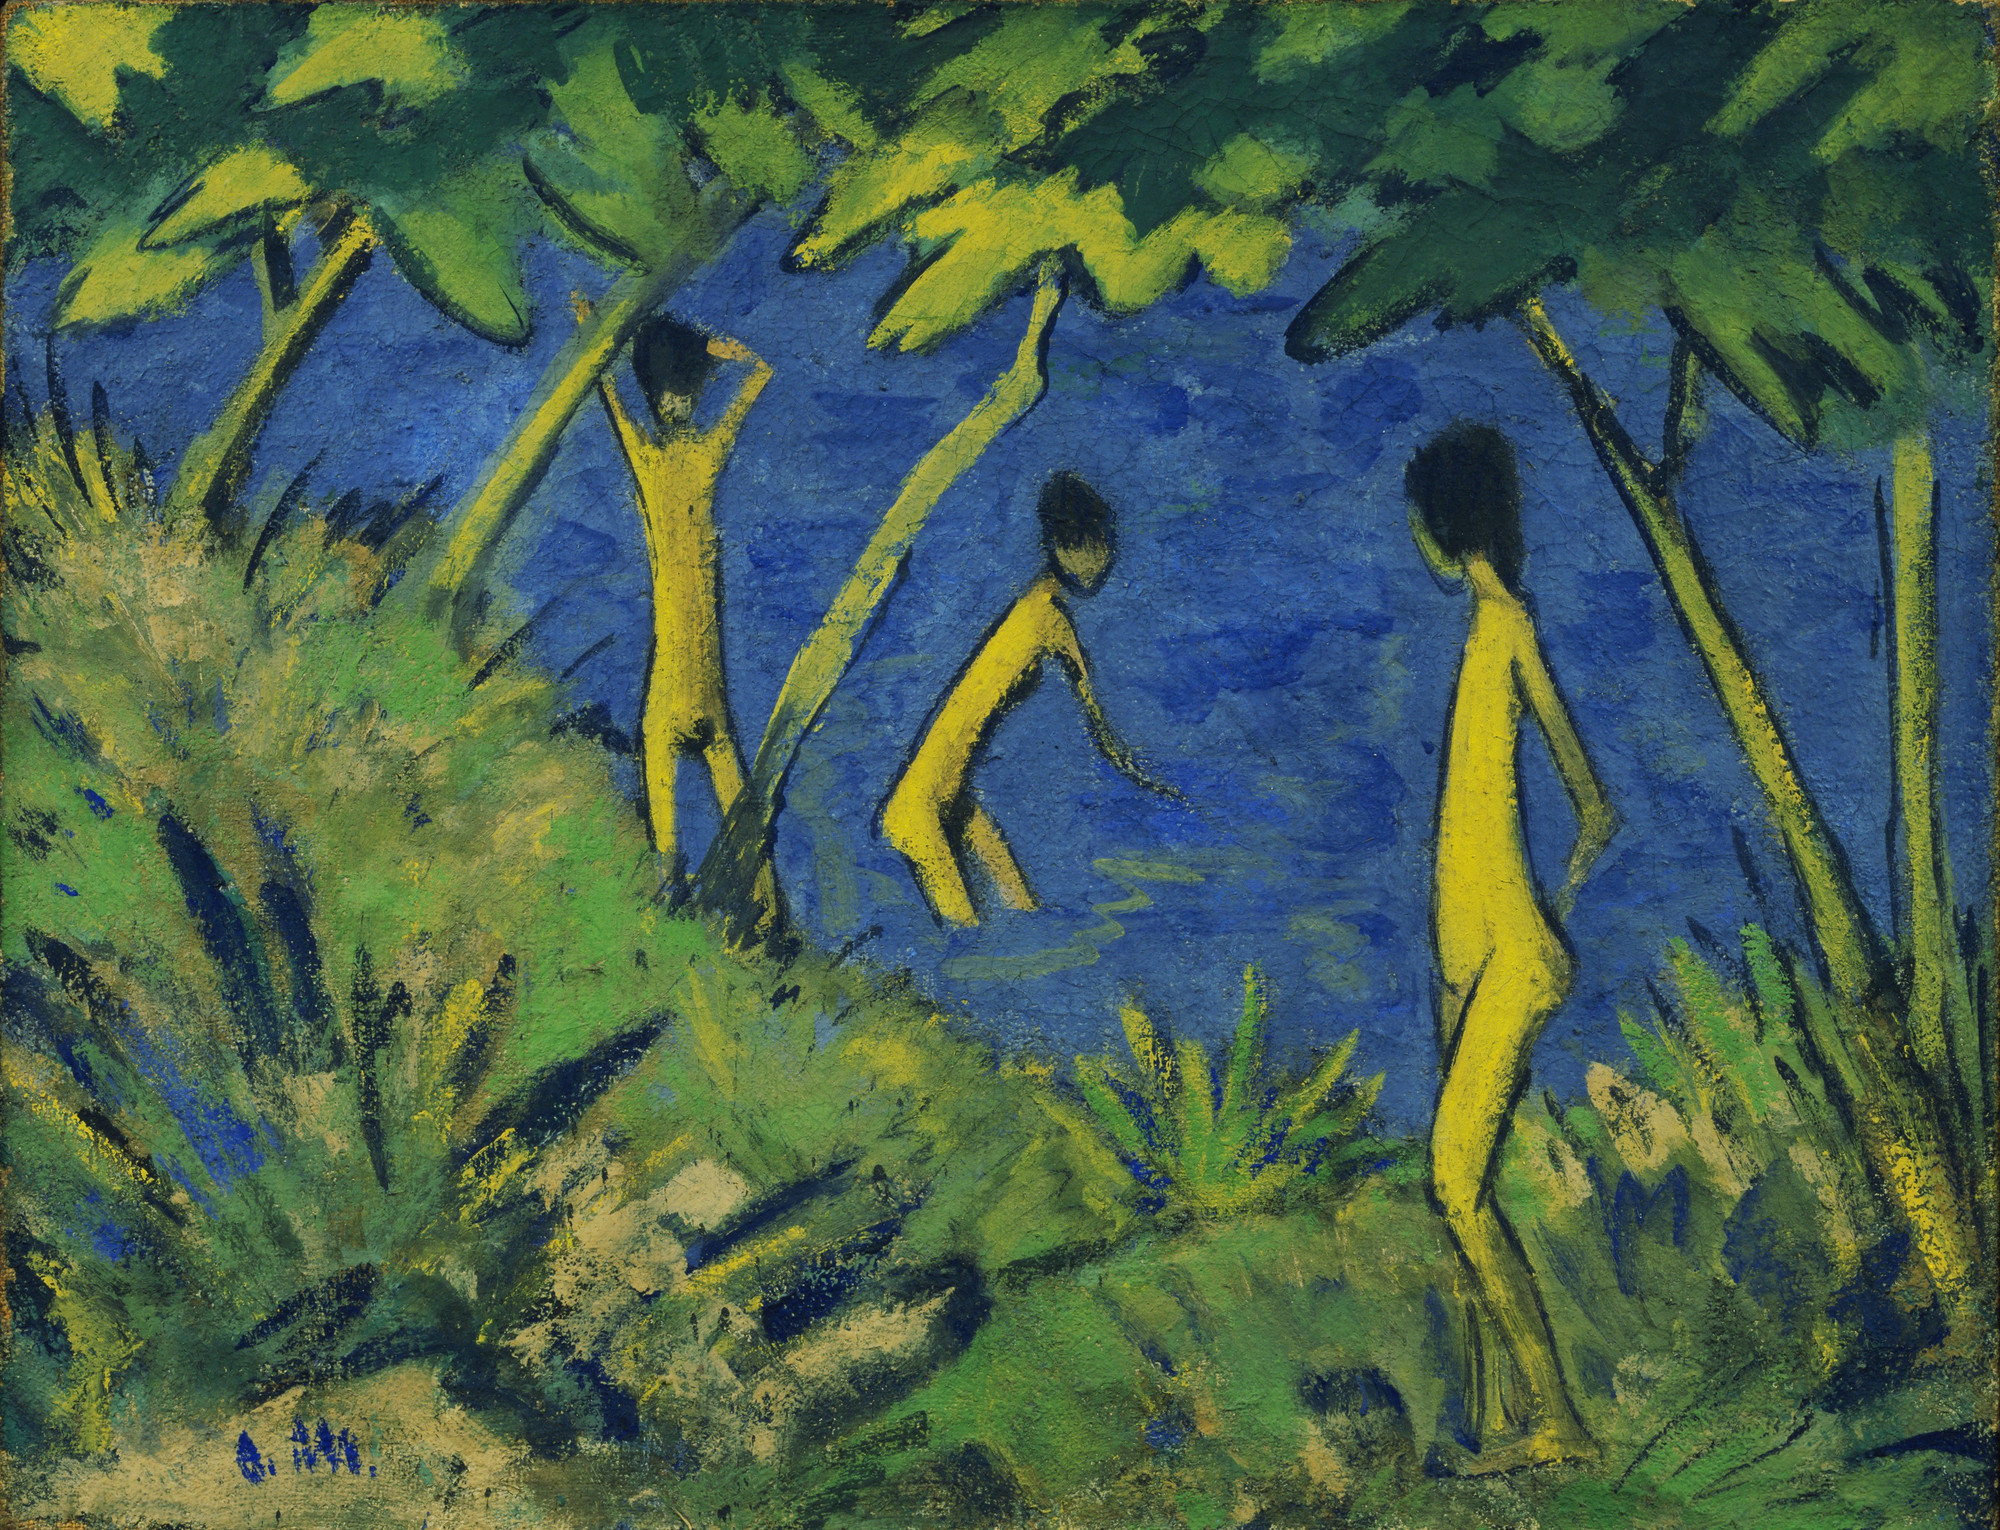 Otto Mueller. Landscape with Yellow Nudes. c. 1919